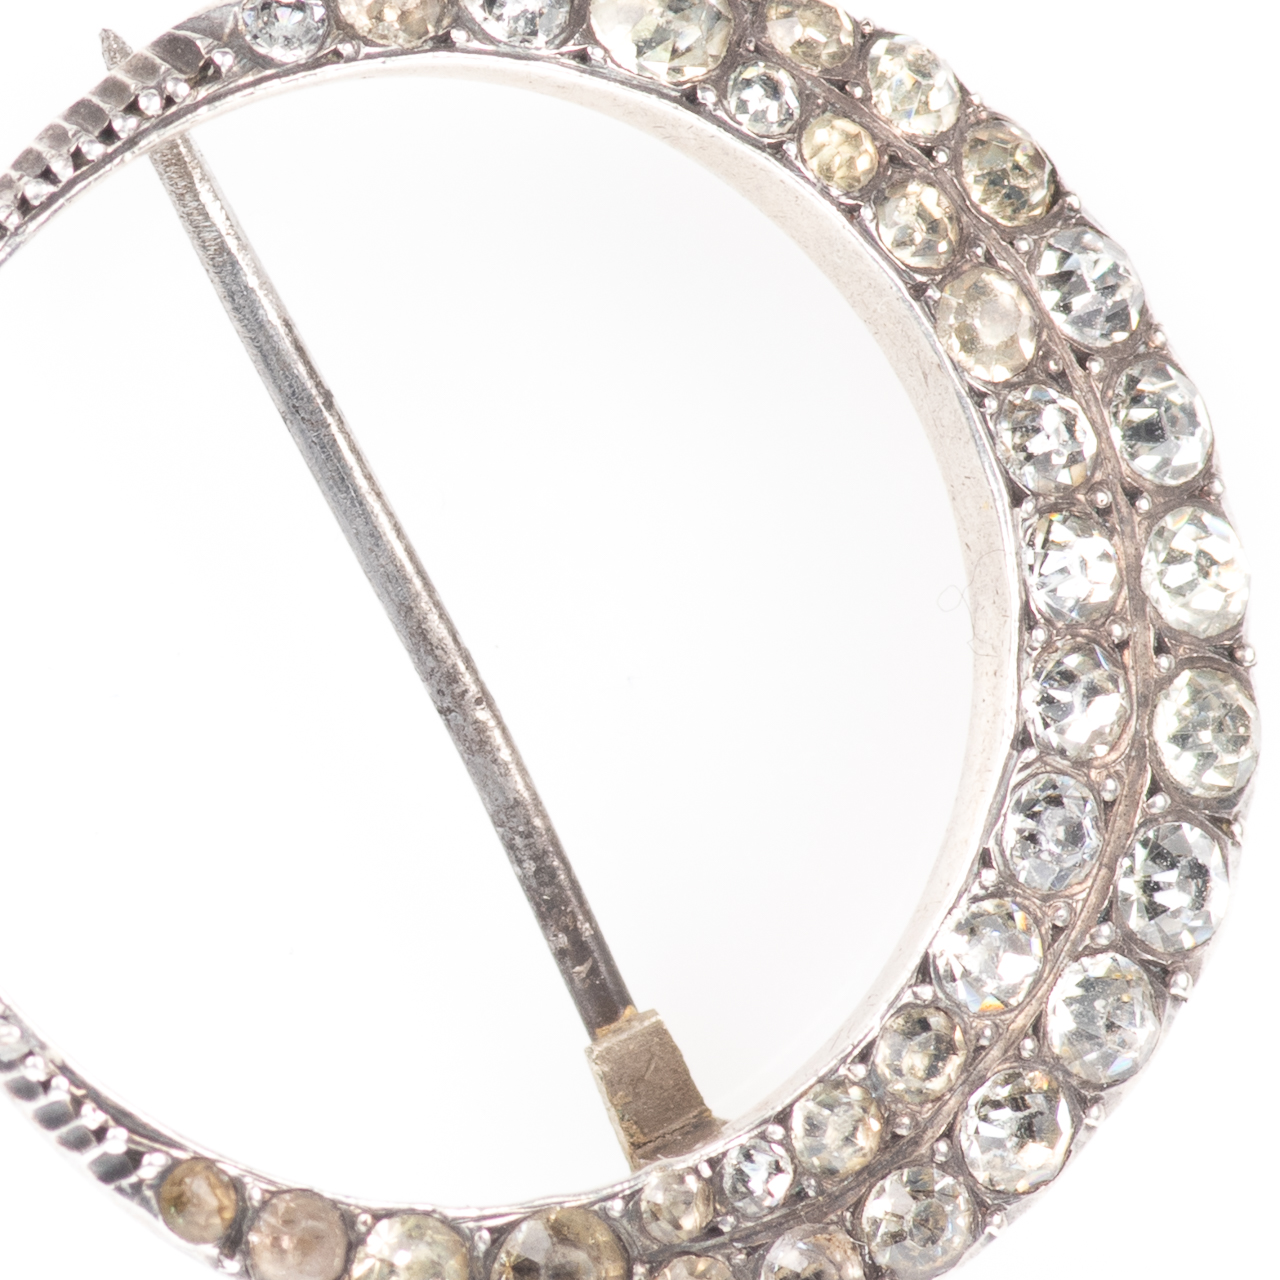 Victorian 900 Silver Paste Crescent Moon Brooch - Image 2 of 5